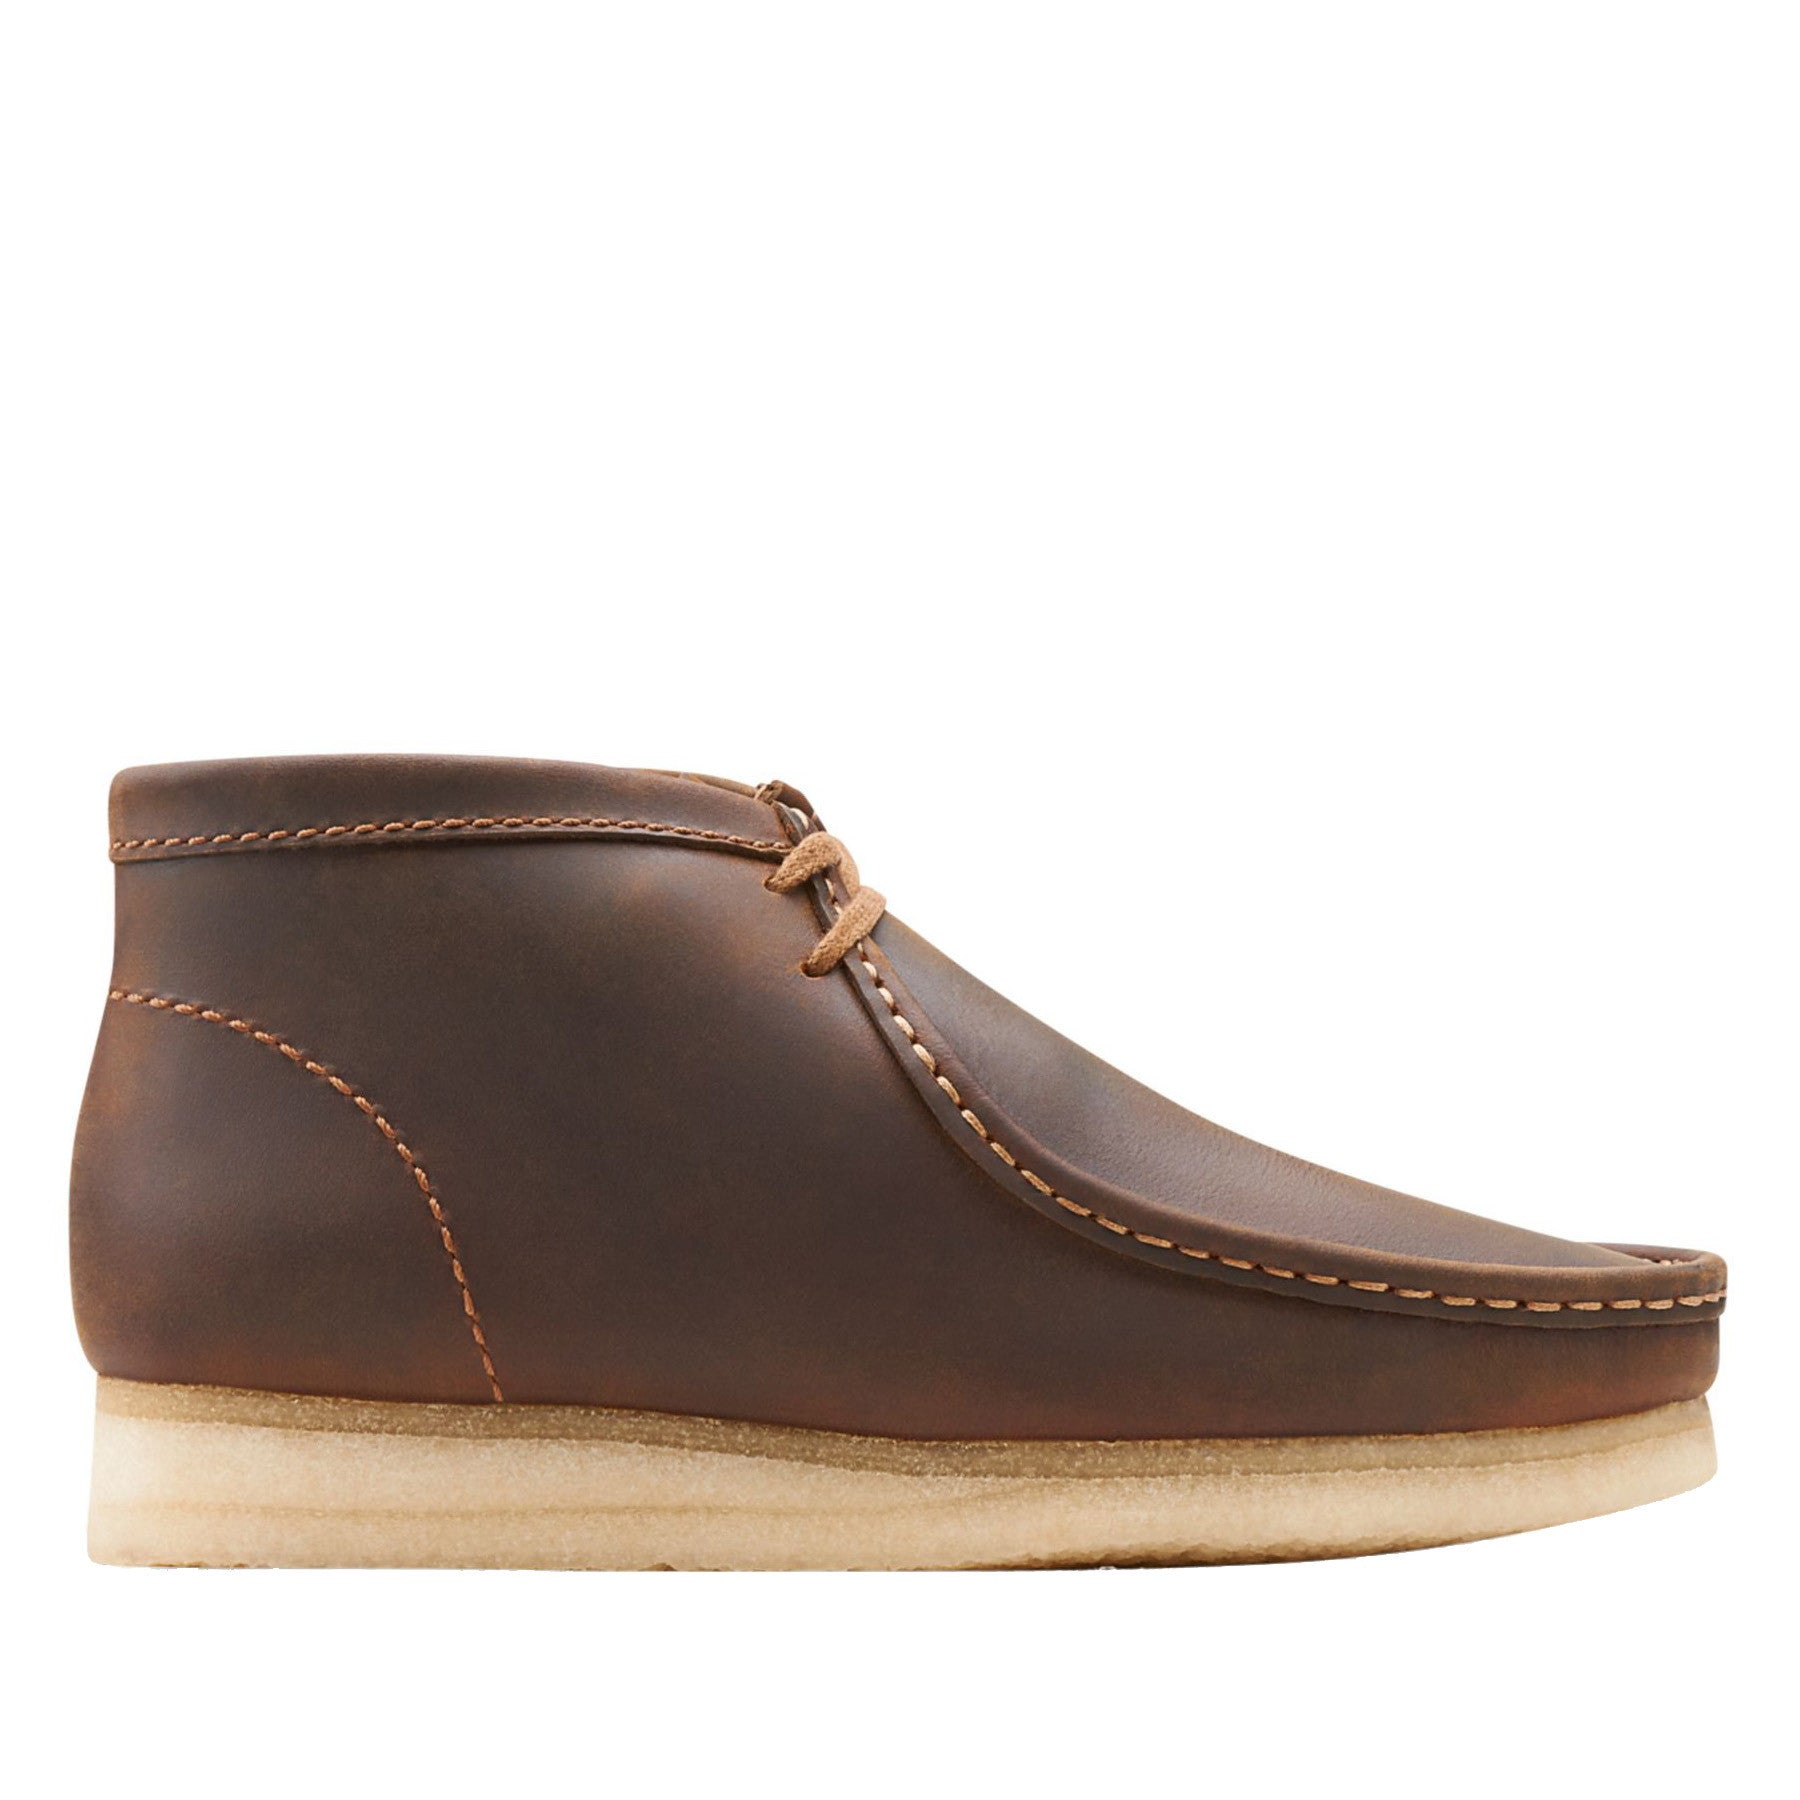 72bd546c0ac Clarks - Wallabee Boot - Beeswax Leather – AtEaze